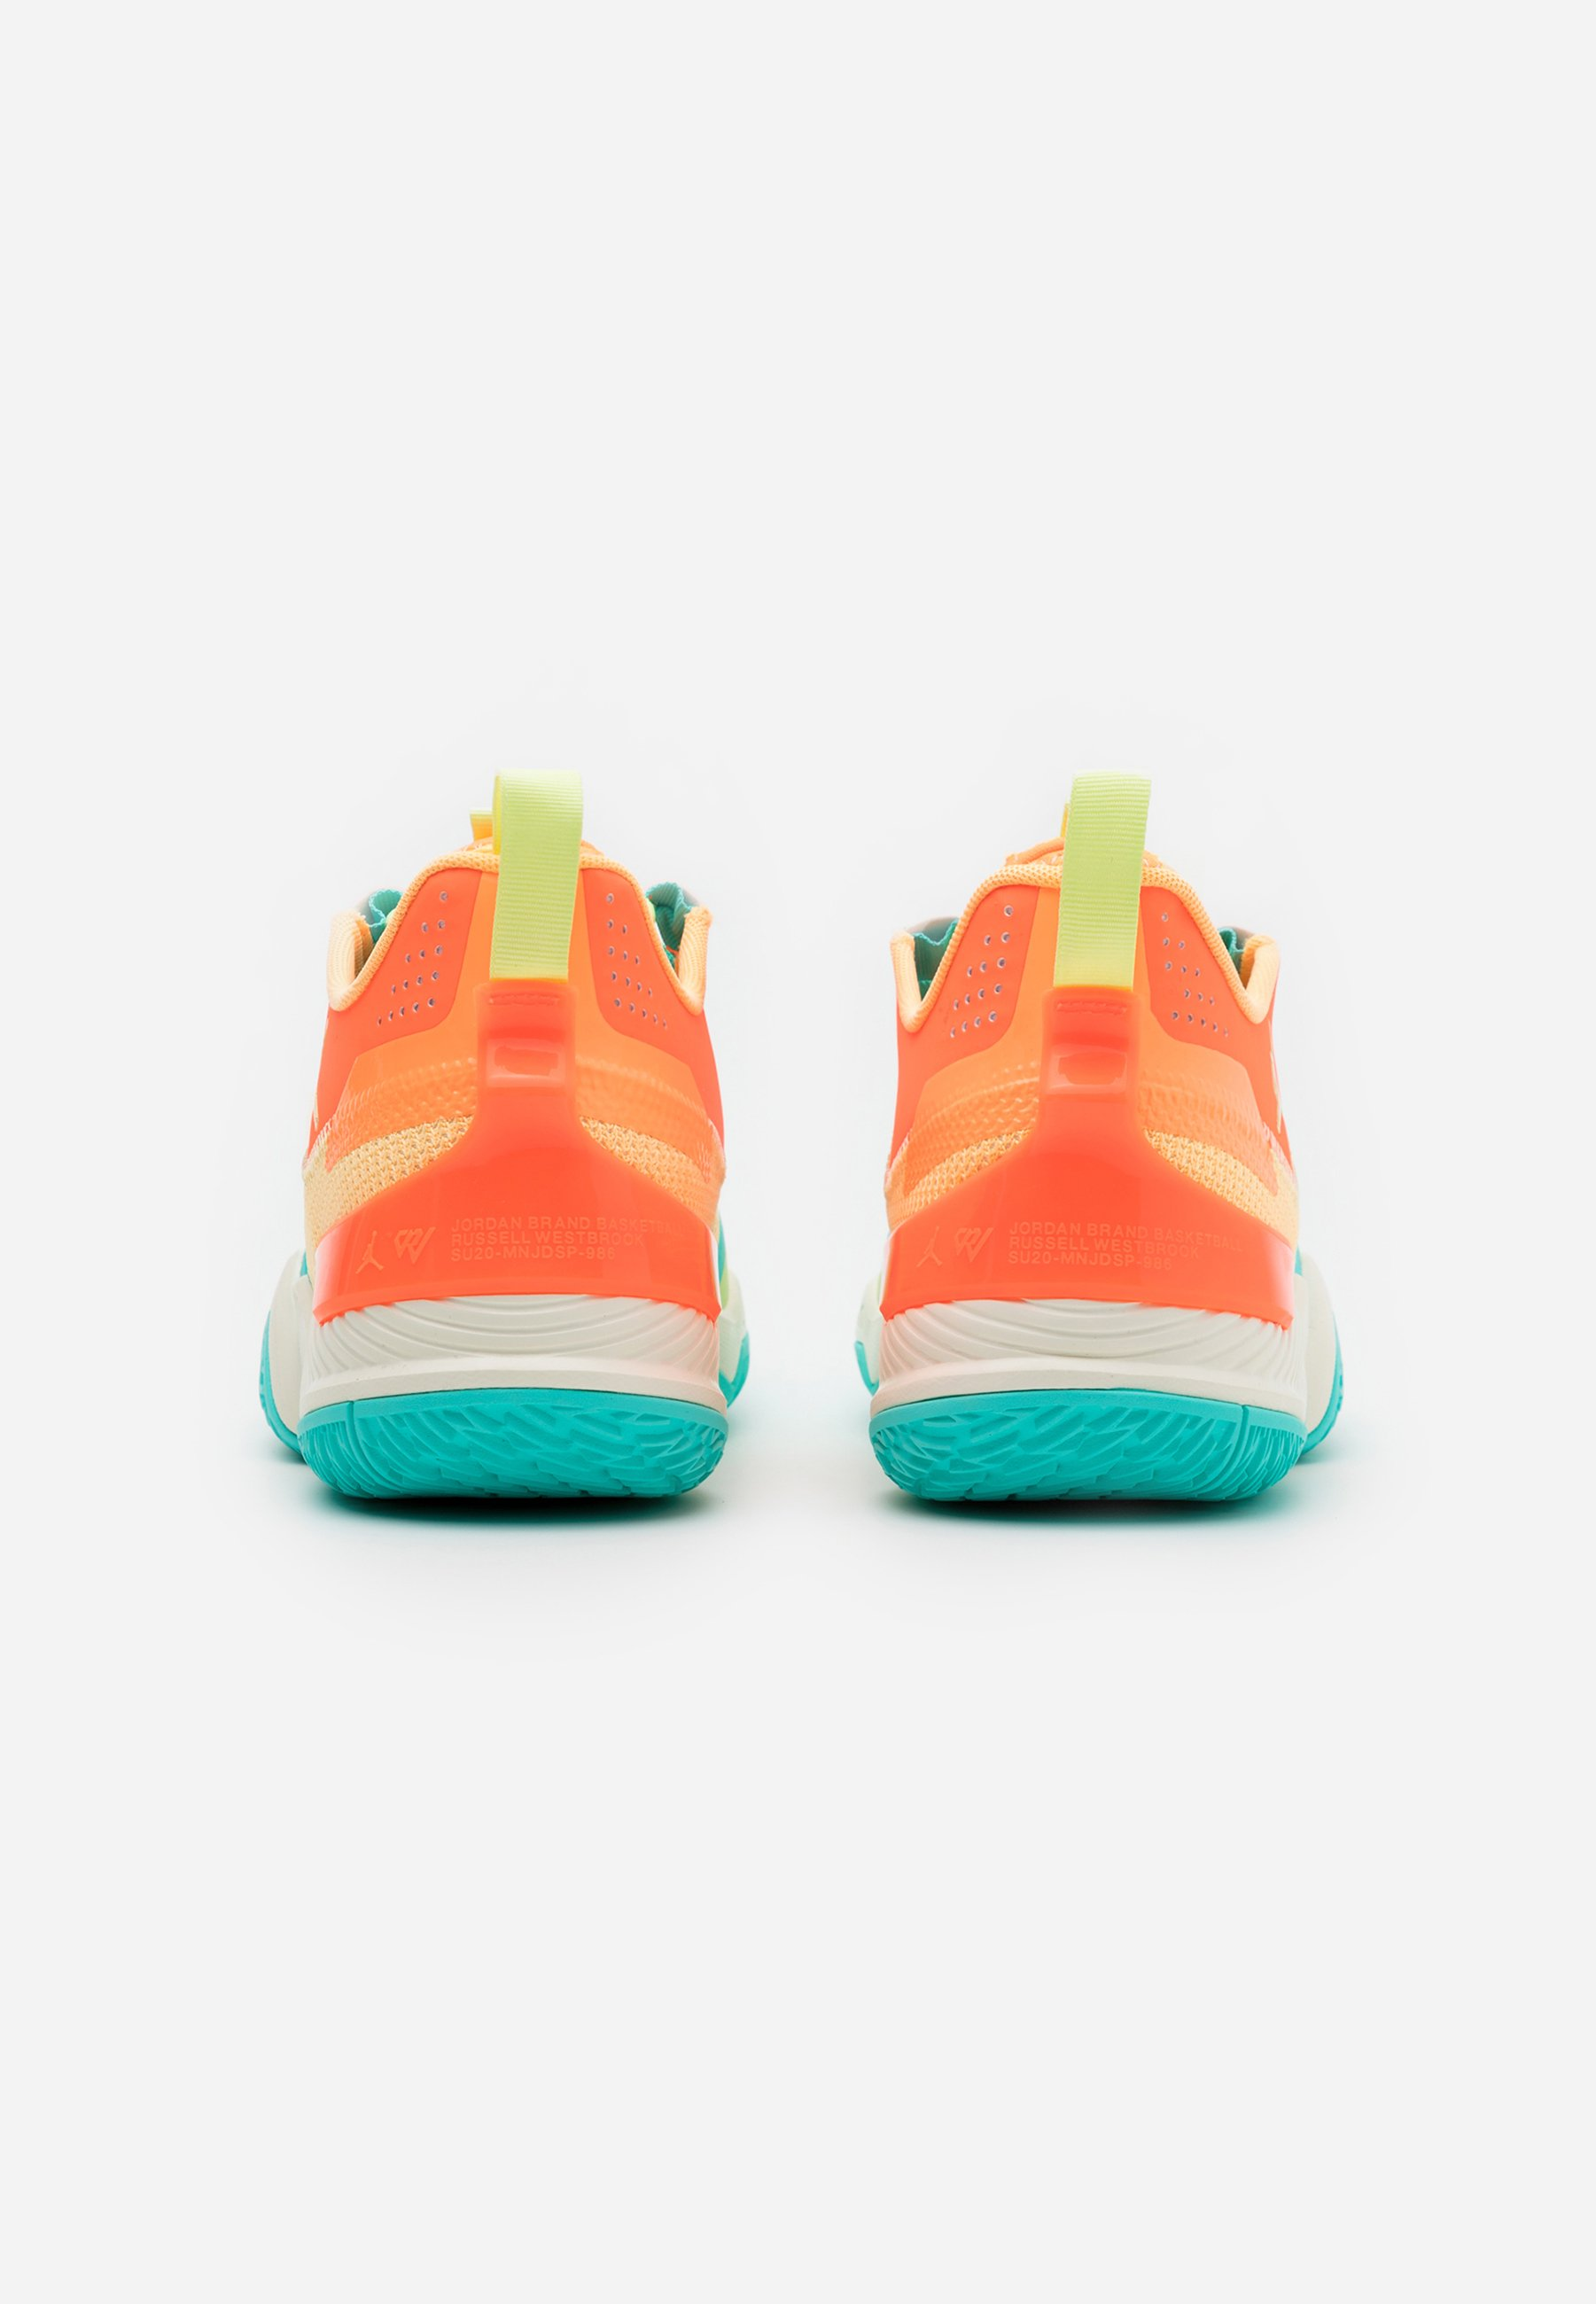 Jordan Basketballschuh - melon tint/light liquid lime/hyper crimson/orange - Herrenschuhe 2K6cr